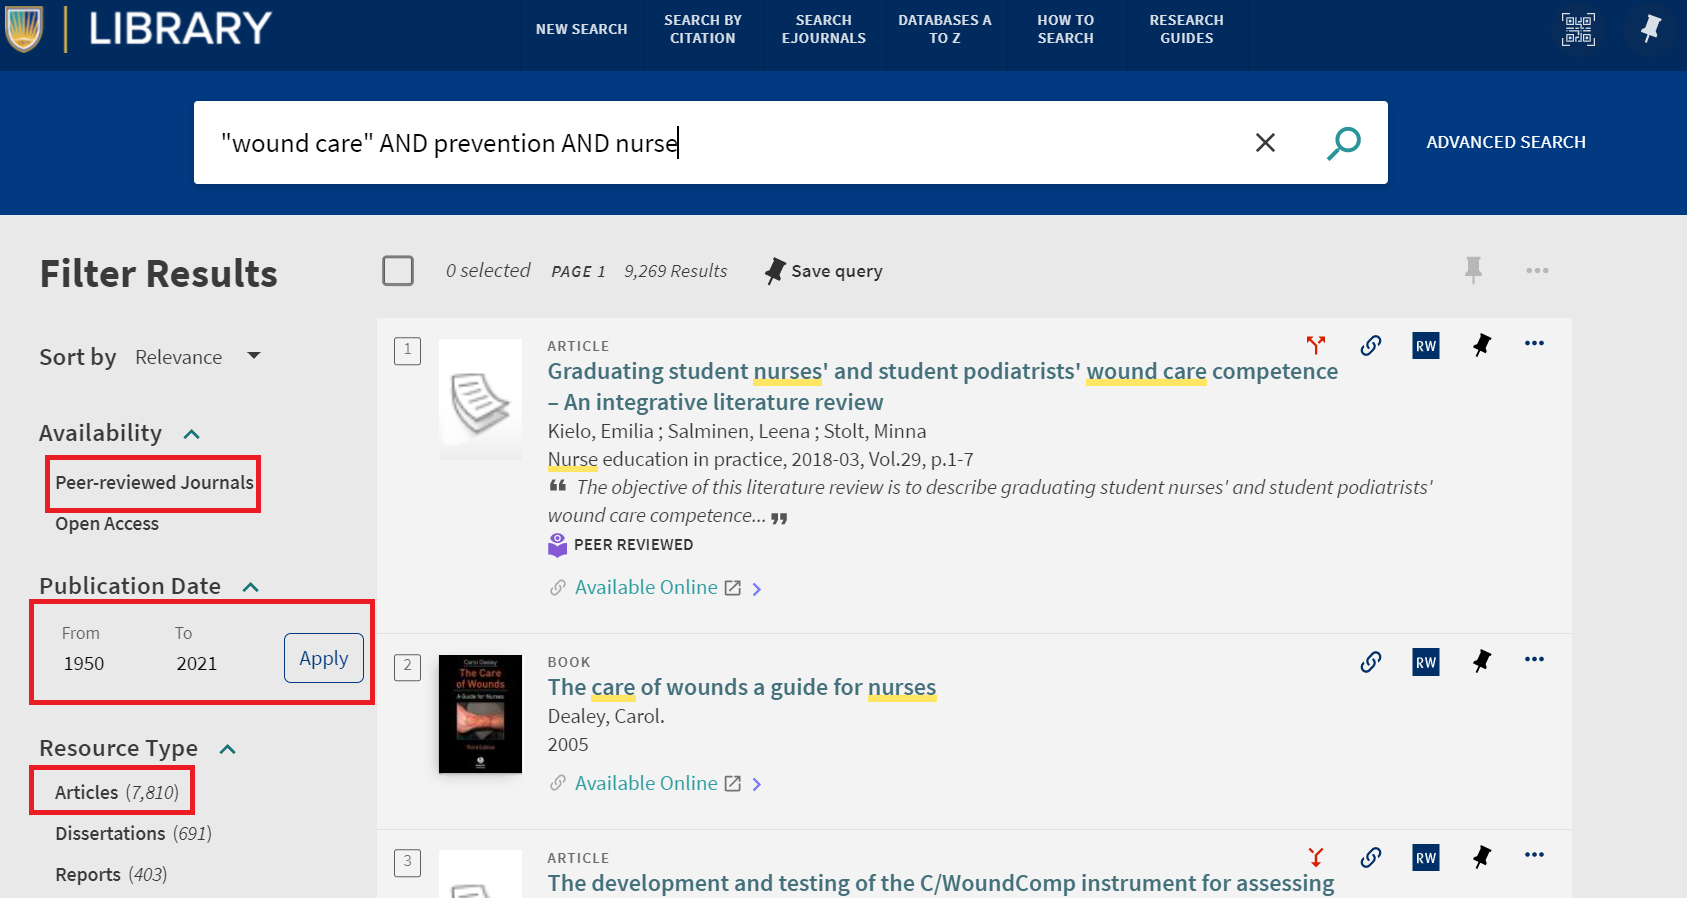 Keyword search example for wound care prevention in nursing from Search Everything box on the library homepage